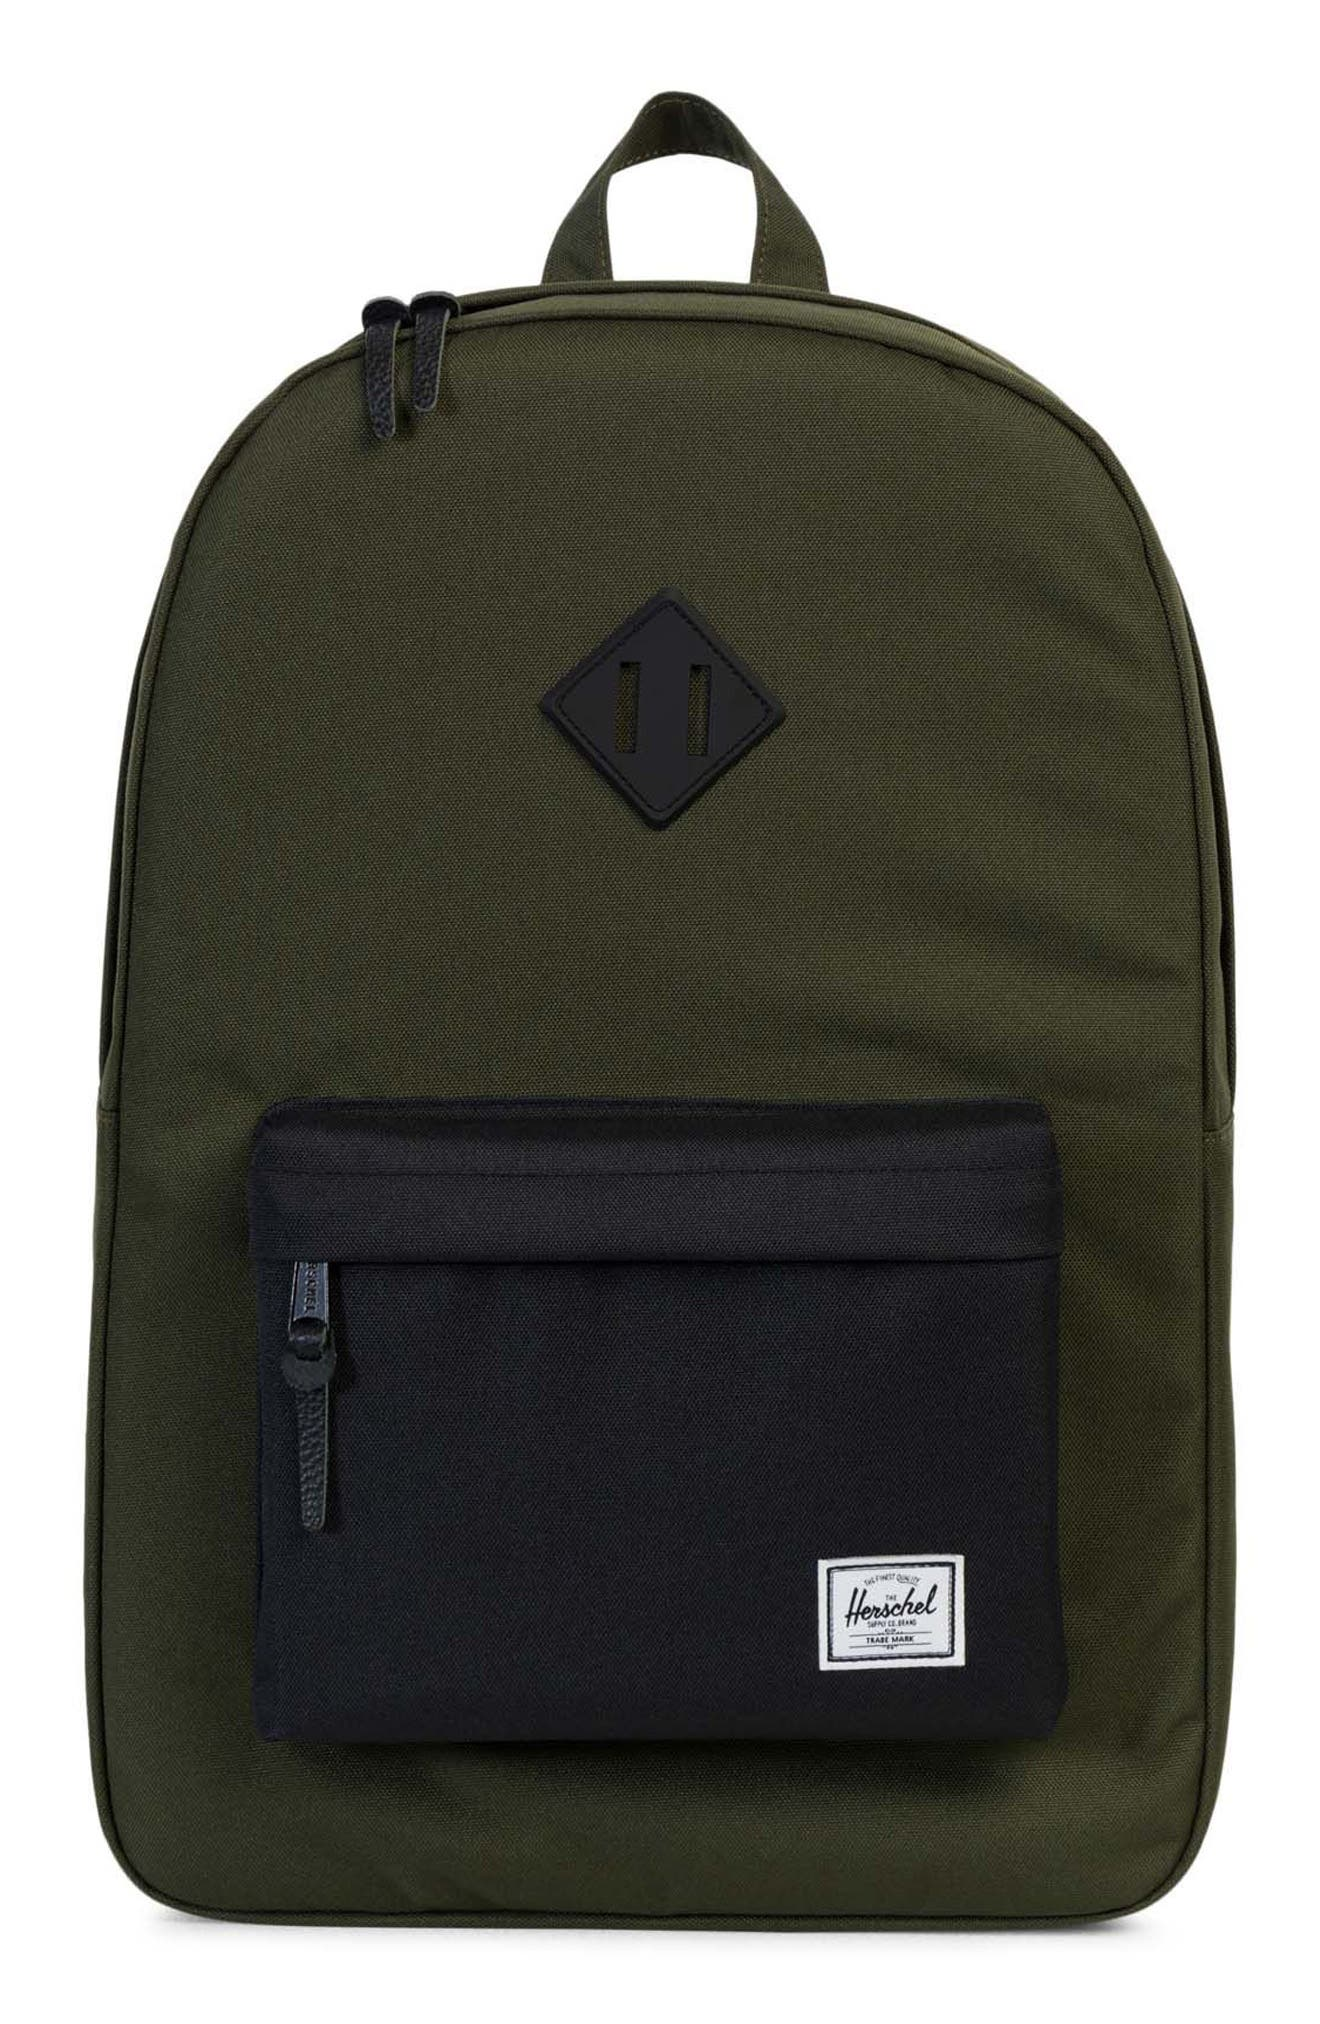 Alternate Image 1 Selected - Herschel Supply Co. Heritage Backpack